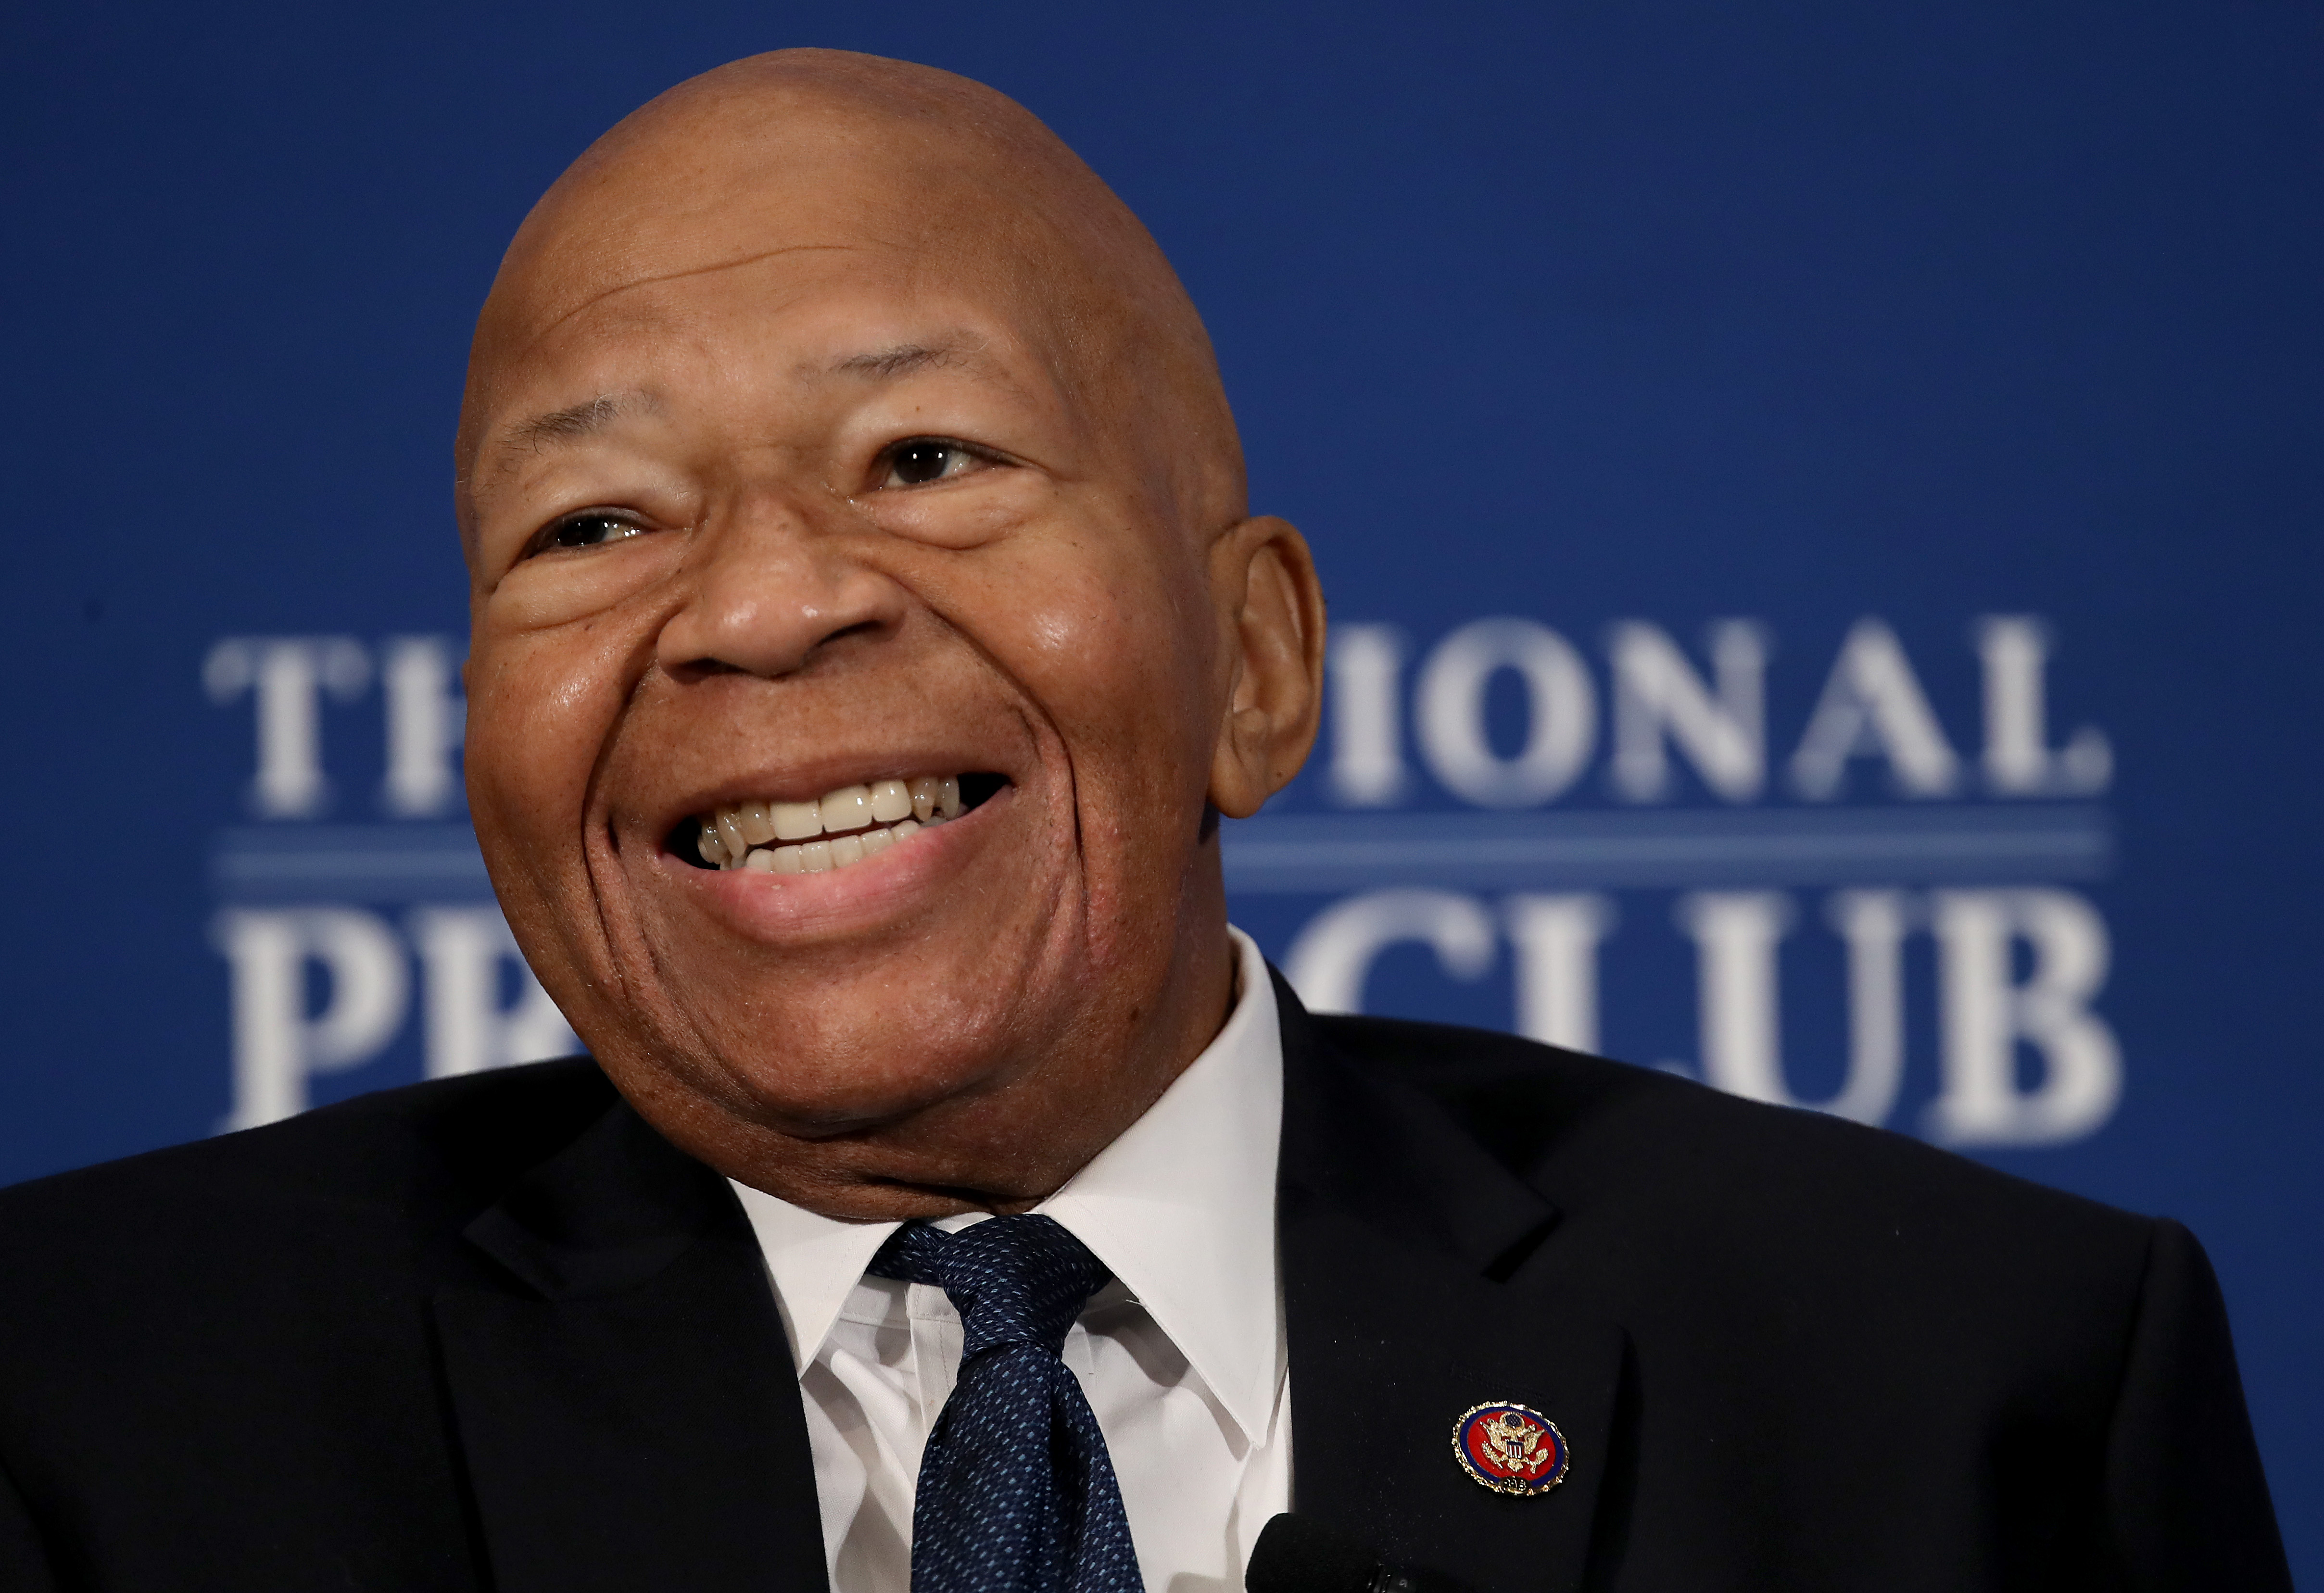 House Oversight and Reform Chairman Elijah Cummings speaks at the National Press Club on August 7, 2019. (Win McNamee/Getty Images)